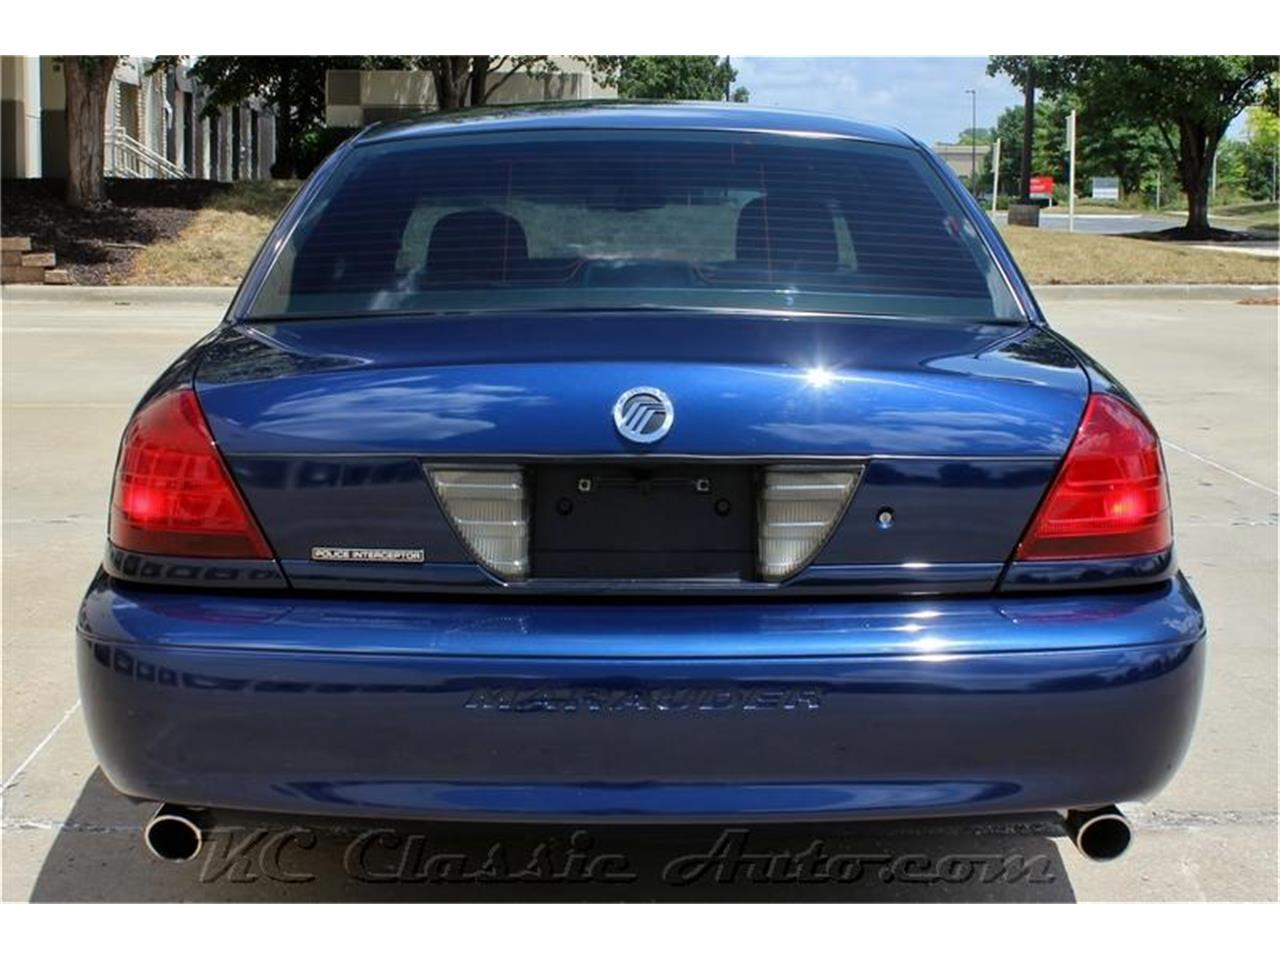 2003 Mercury Marauder for sale in Lenexa, KS – photo 34